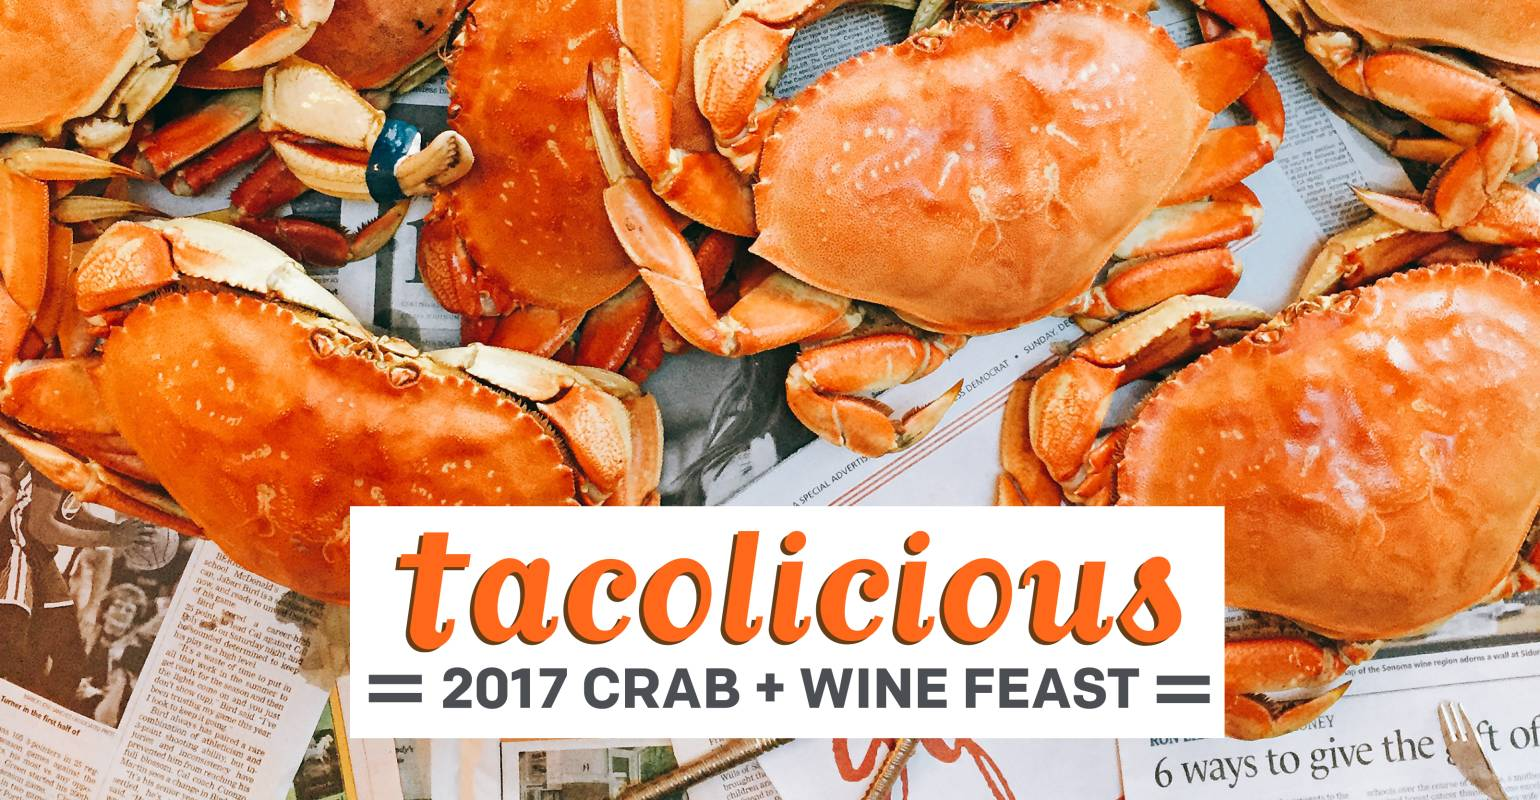 Tacolicious 2017 Crab + Wine Feast